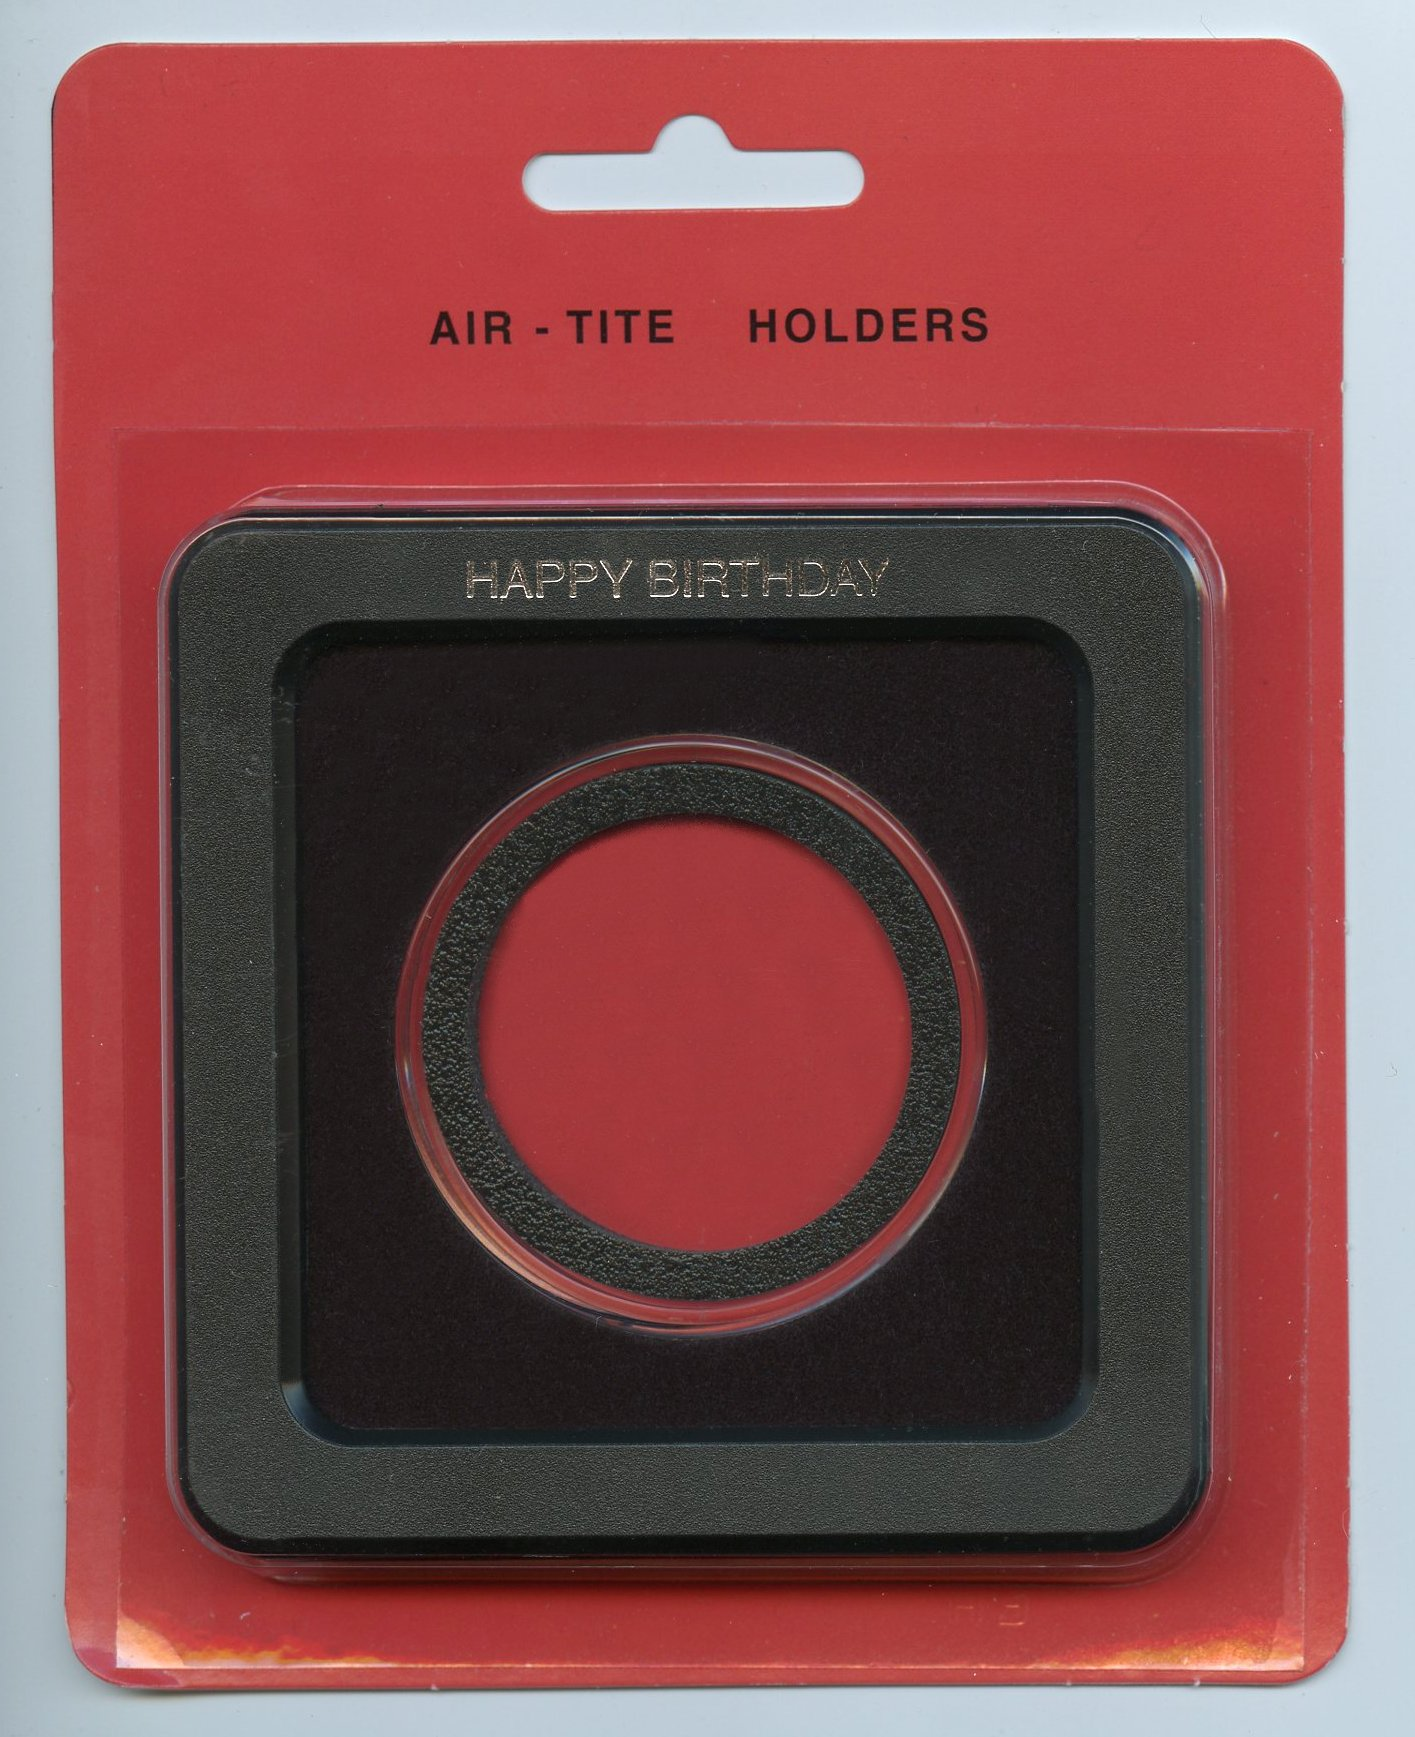 Air-Tite Coin Frame Holders - Special Occasion